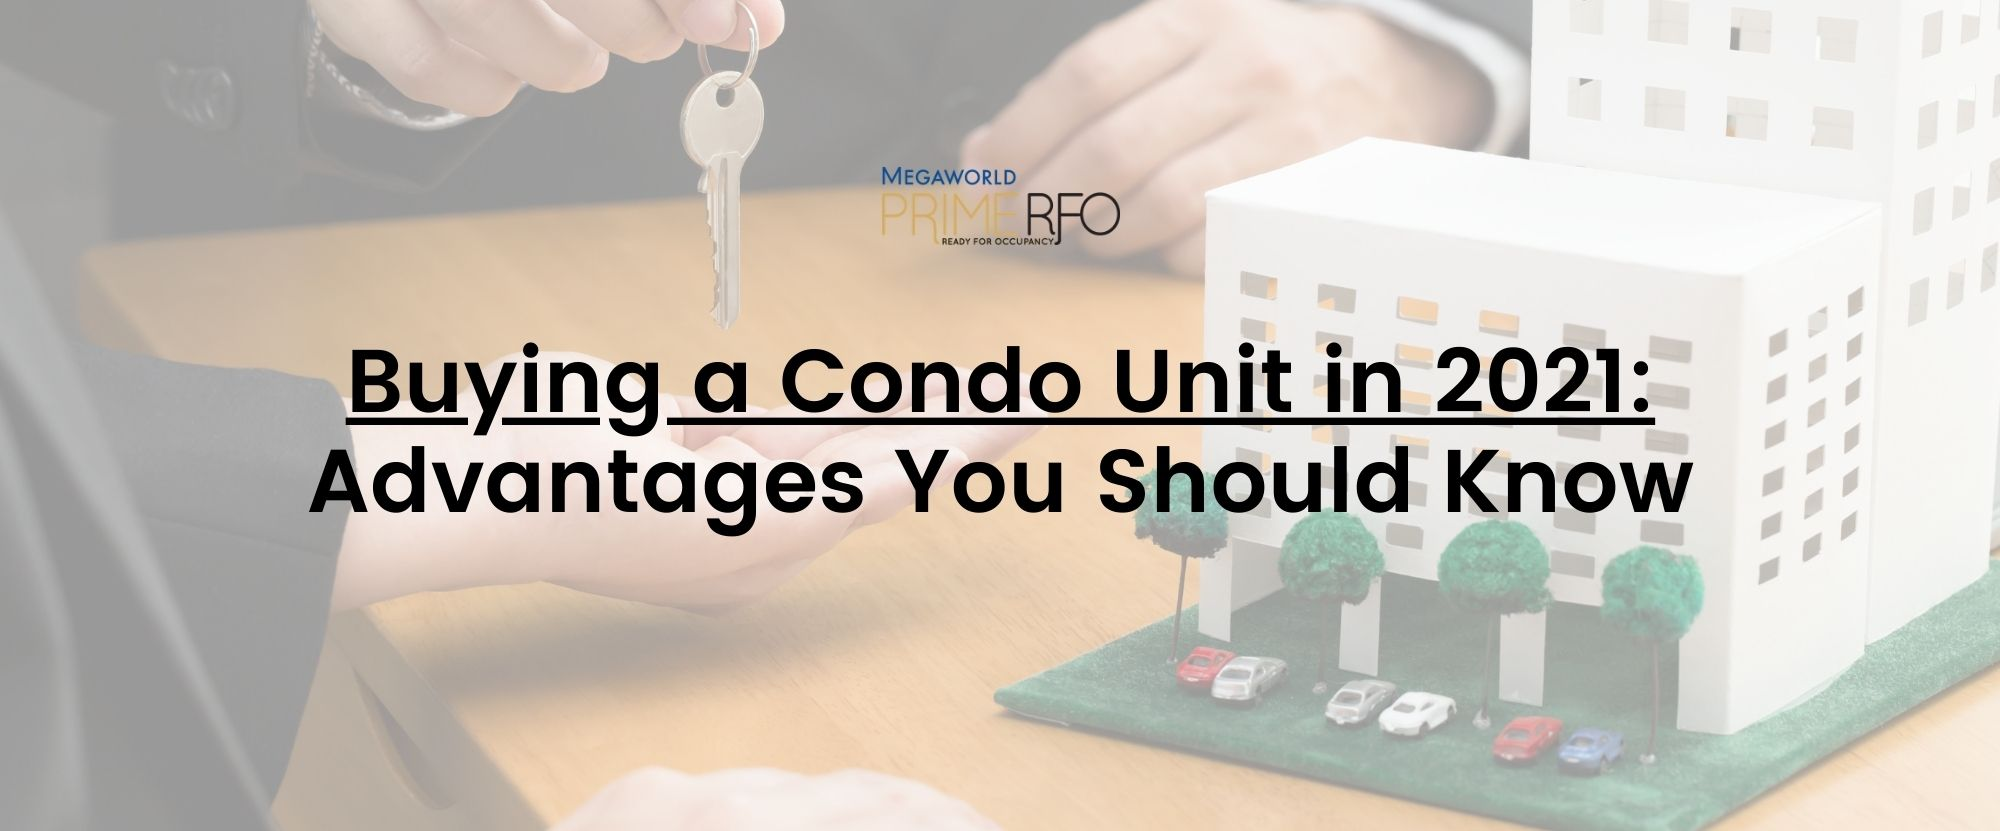 Buying a Condo Unit in 2021: Advantages You Should Know